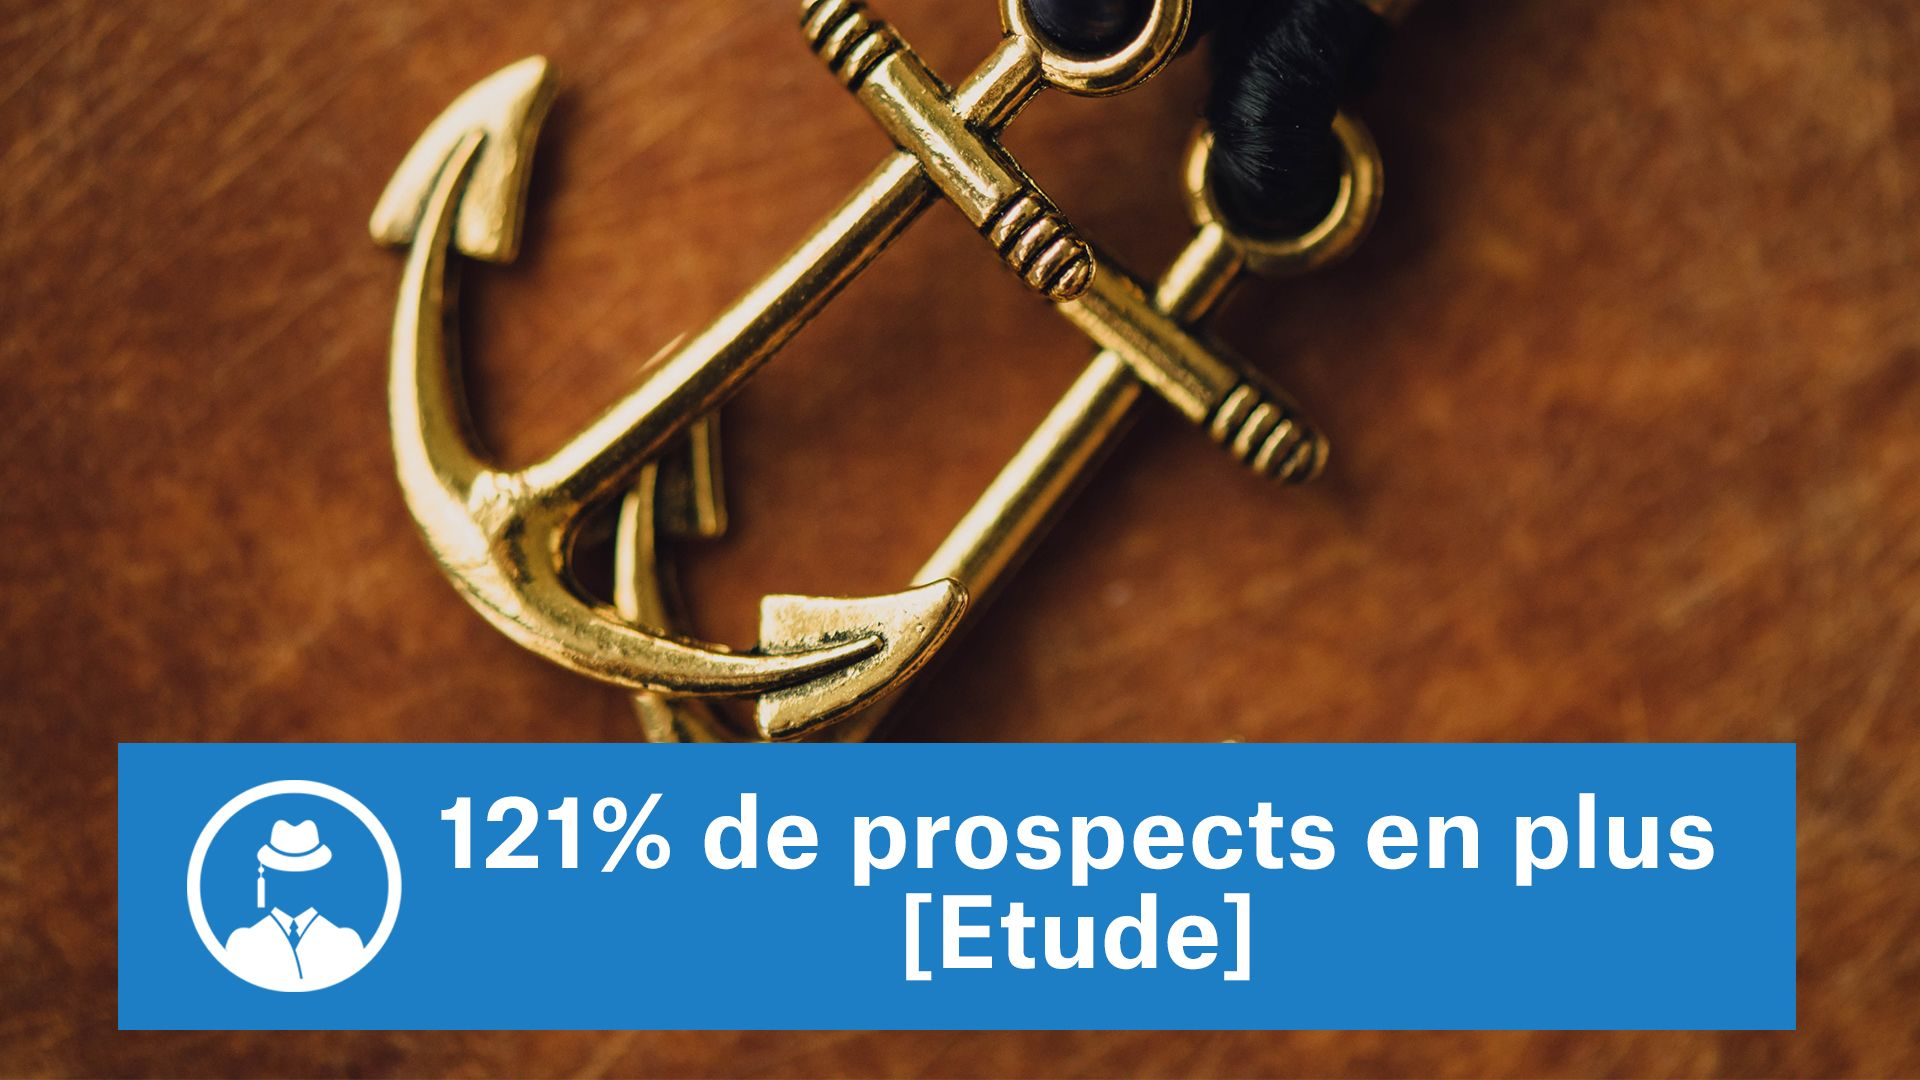 121% de prospects en plus [Etude] #GrowthHacking #WebMarketing #FormationGrowthHacking #CentreDeFormationFrance #TunnelAARRR #AARRR #SocialMedia #CommunityManagement #SEO #MarketingDigital #SiteWeb